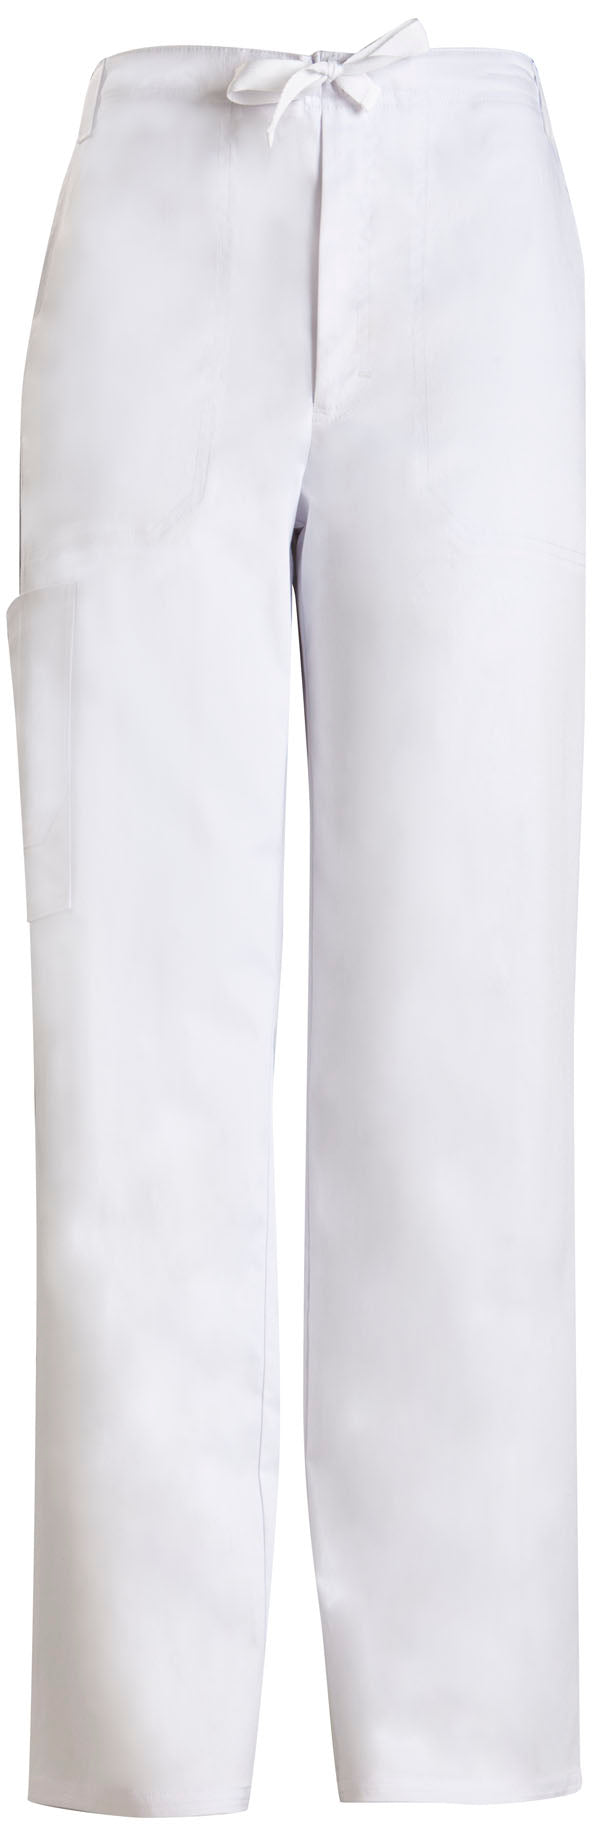 1022 Men's Fly Front Drawstring Pant